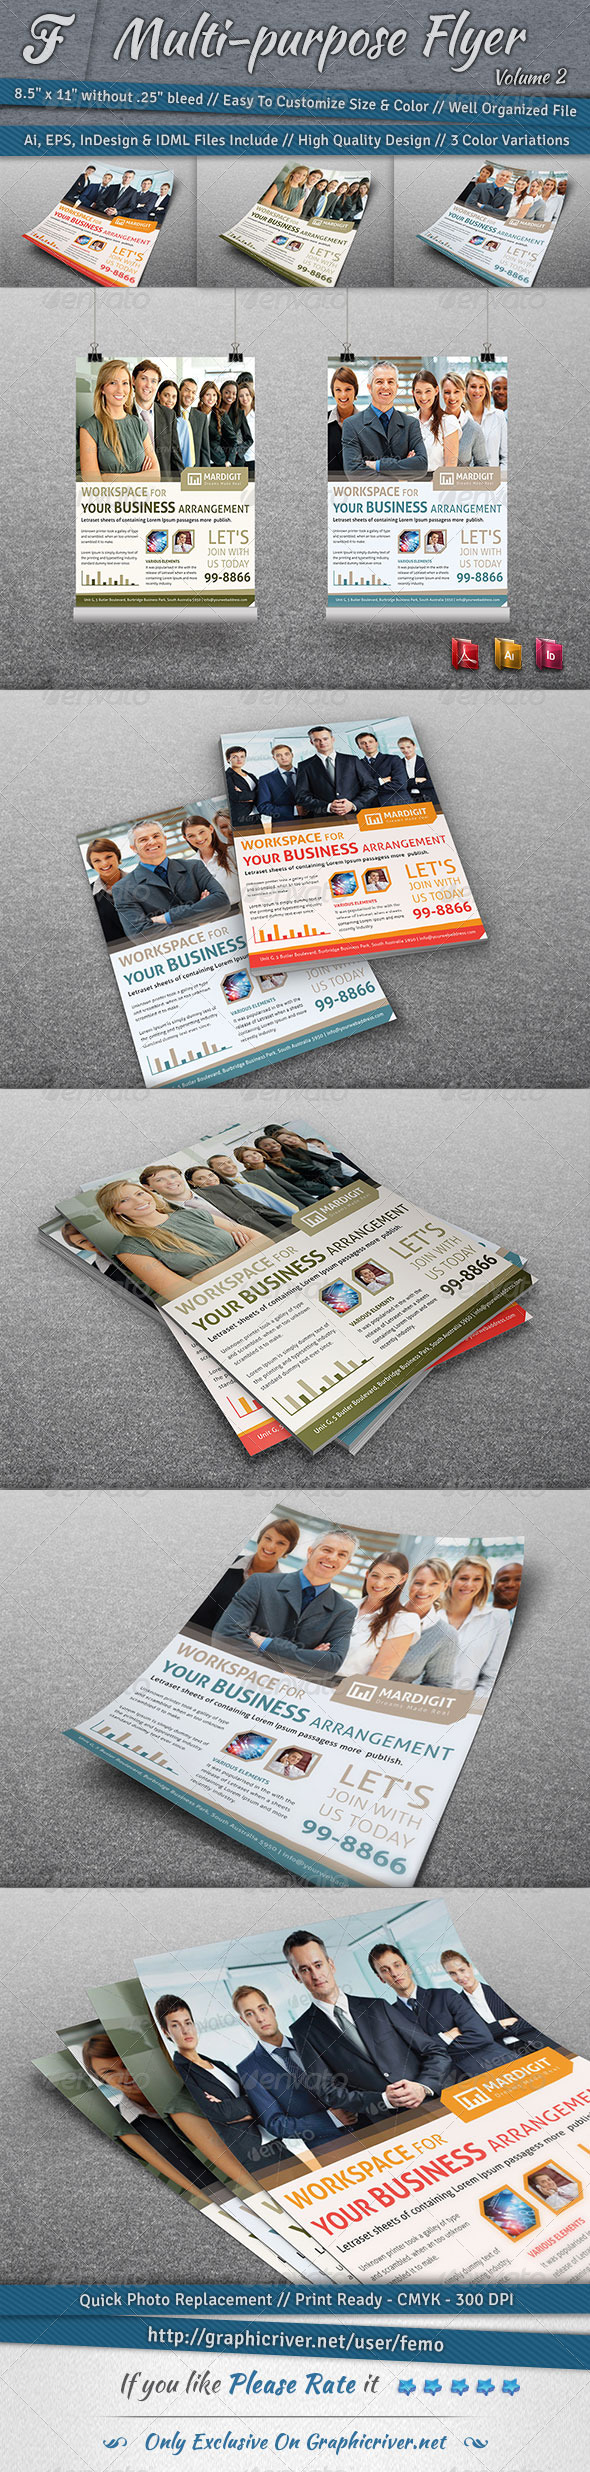 GraphicRiver Multi-purpose Flyer Volume 2 7030164